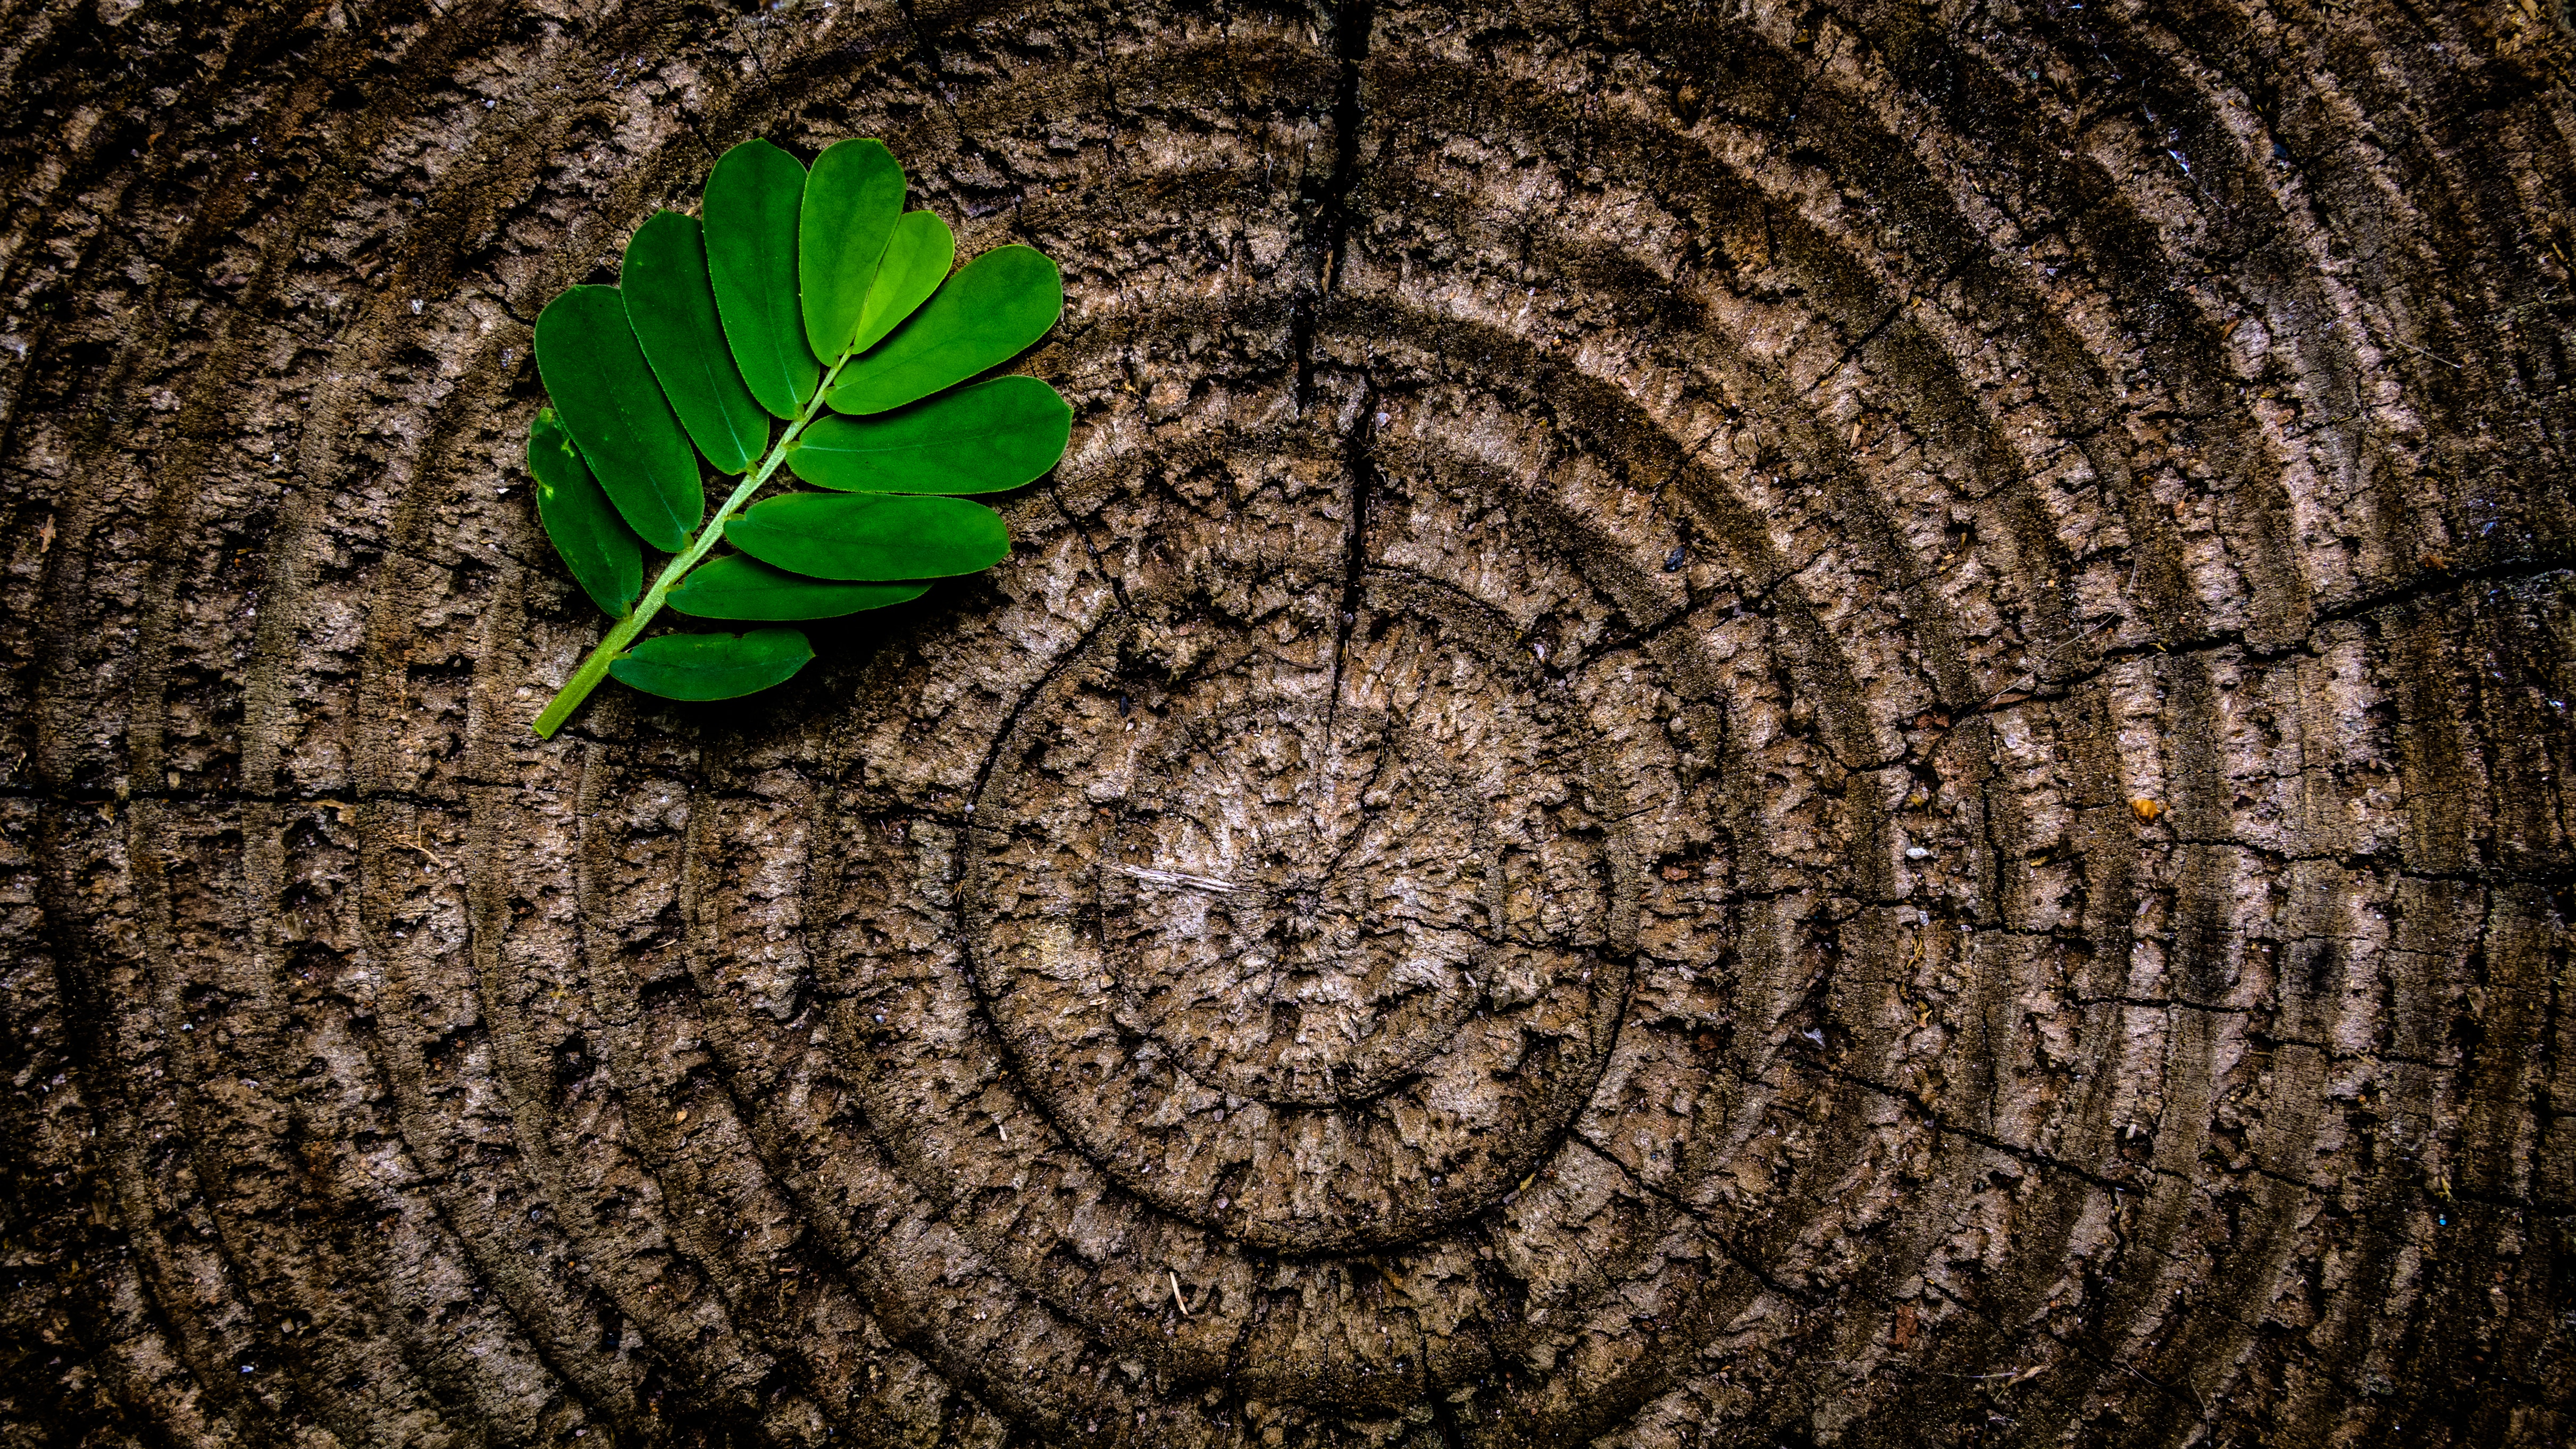 Green leaf plant on brown wooden stump photo